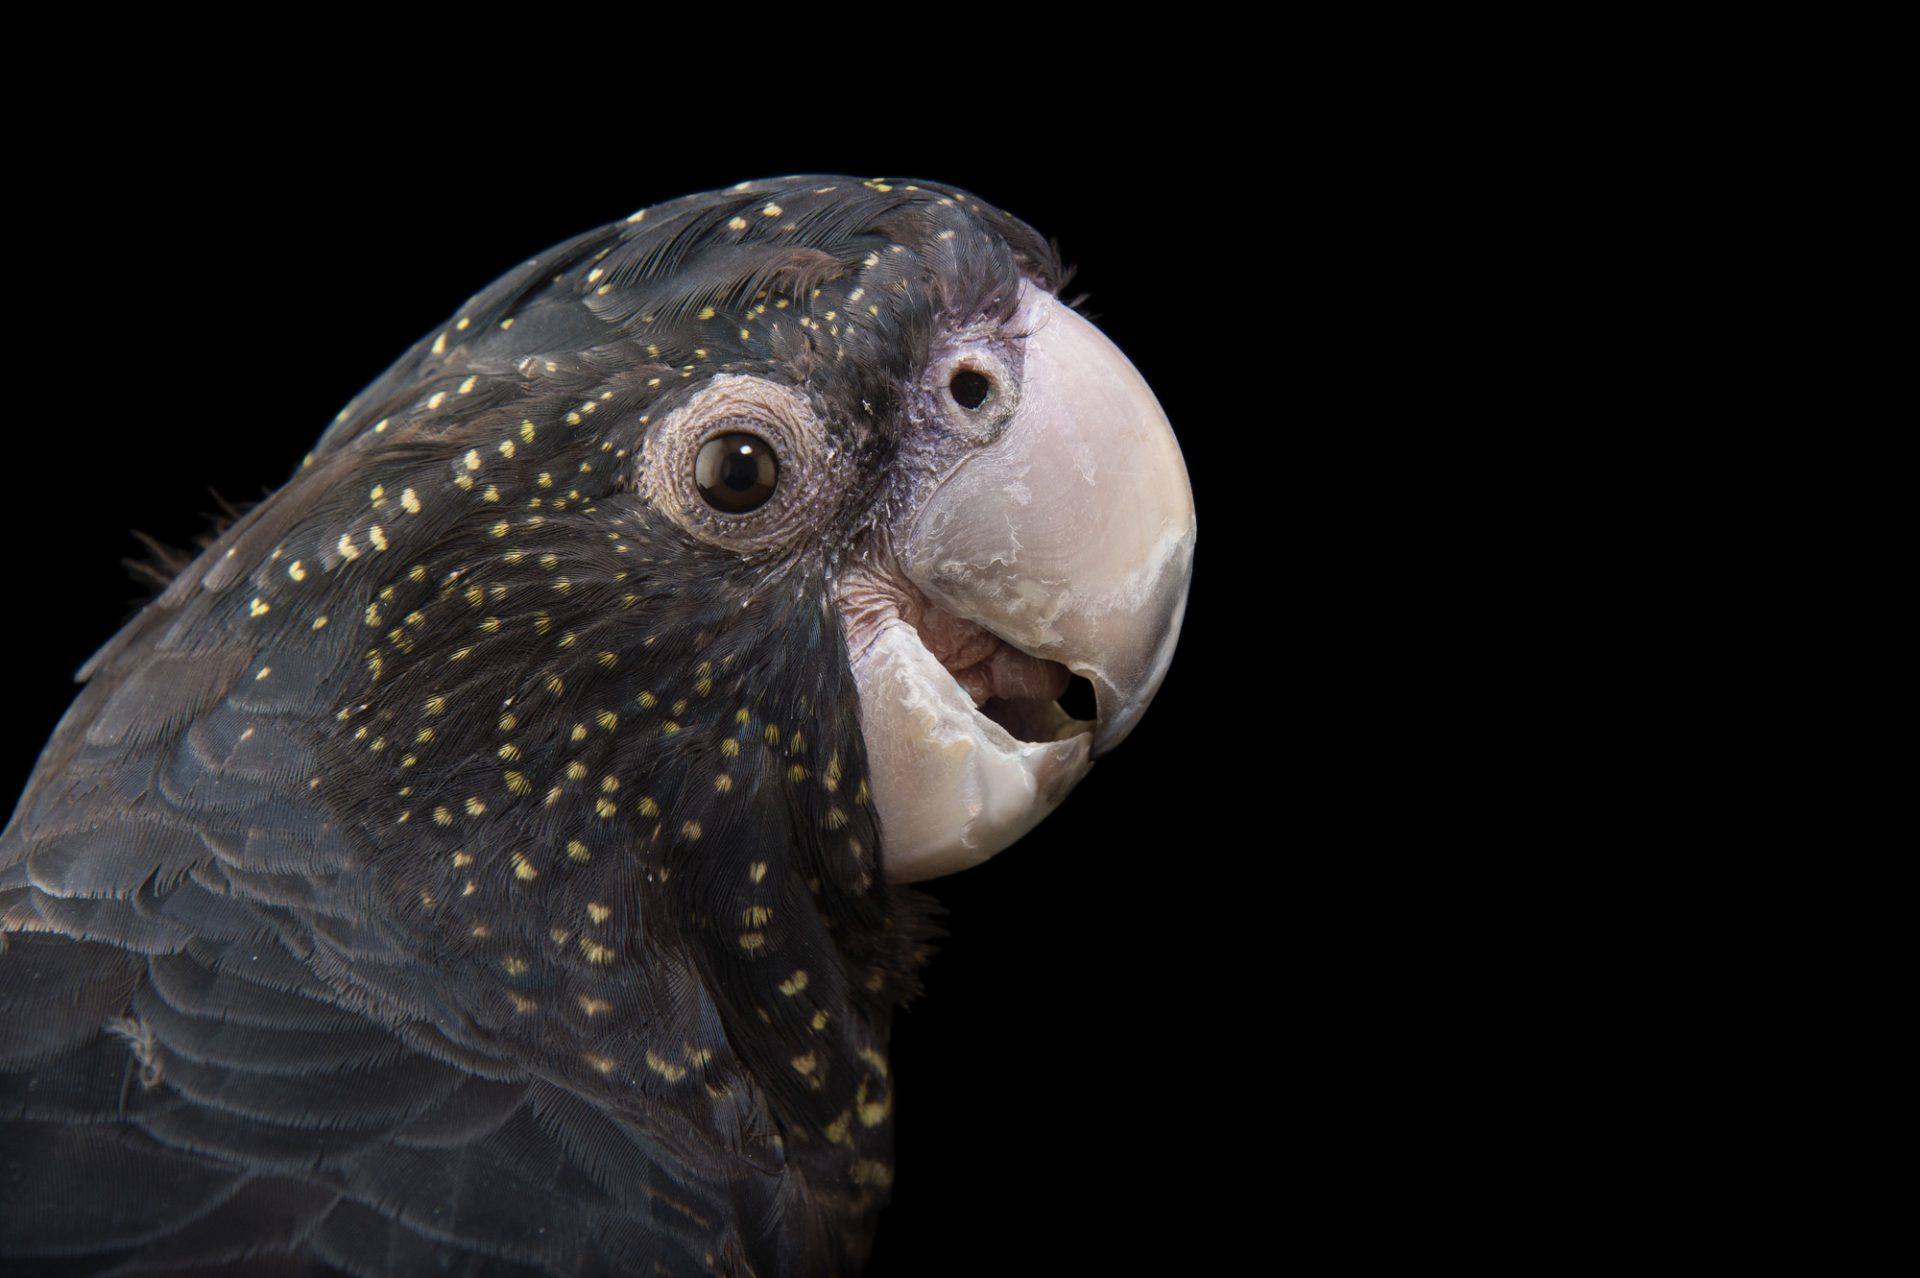 Picture of Matilda, a forest red-tailed black cockatoo (Calyptorhynchus banksii naso) at Tracy Aviary.